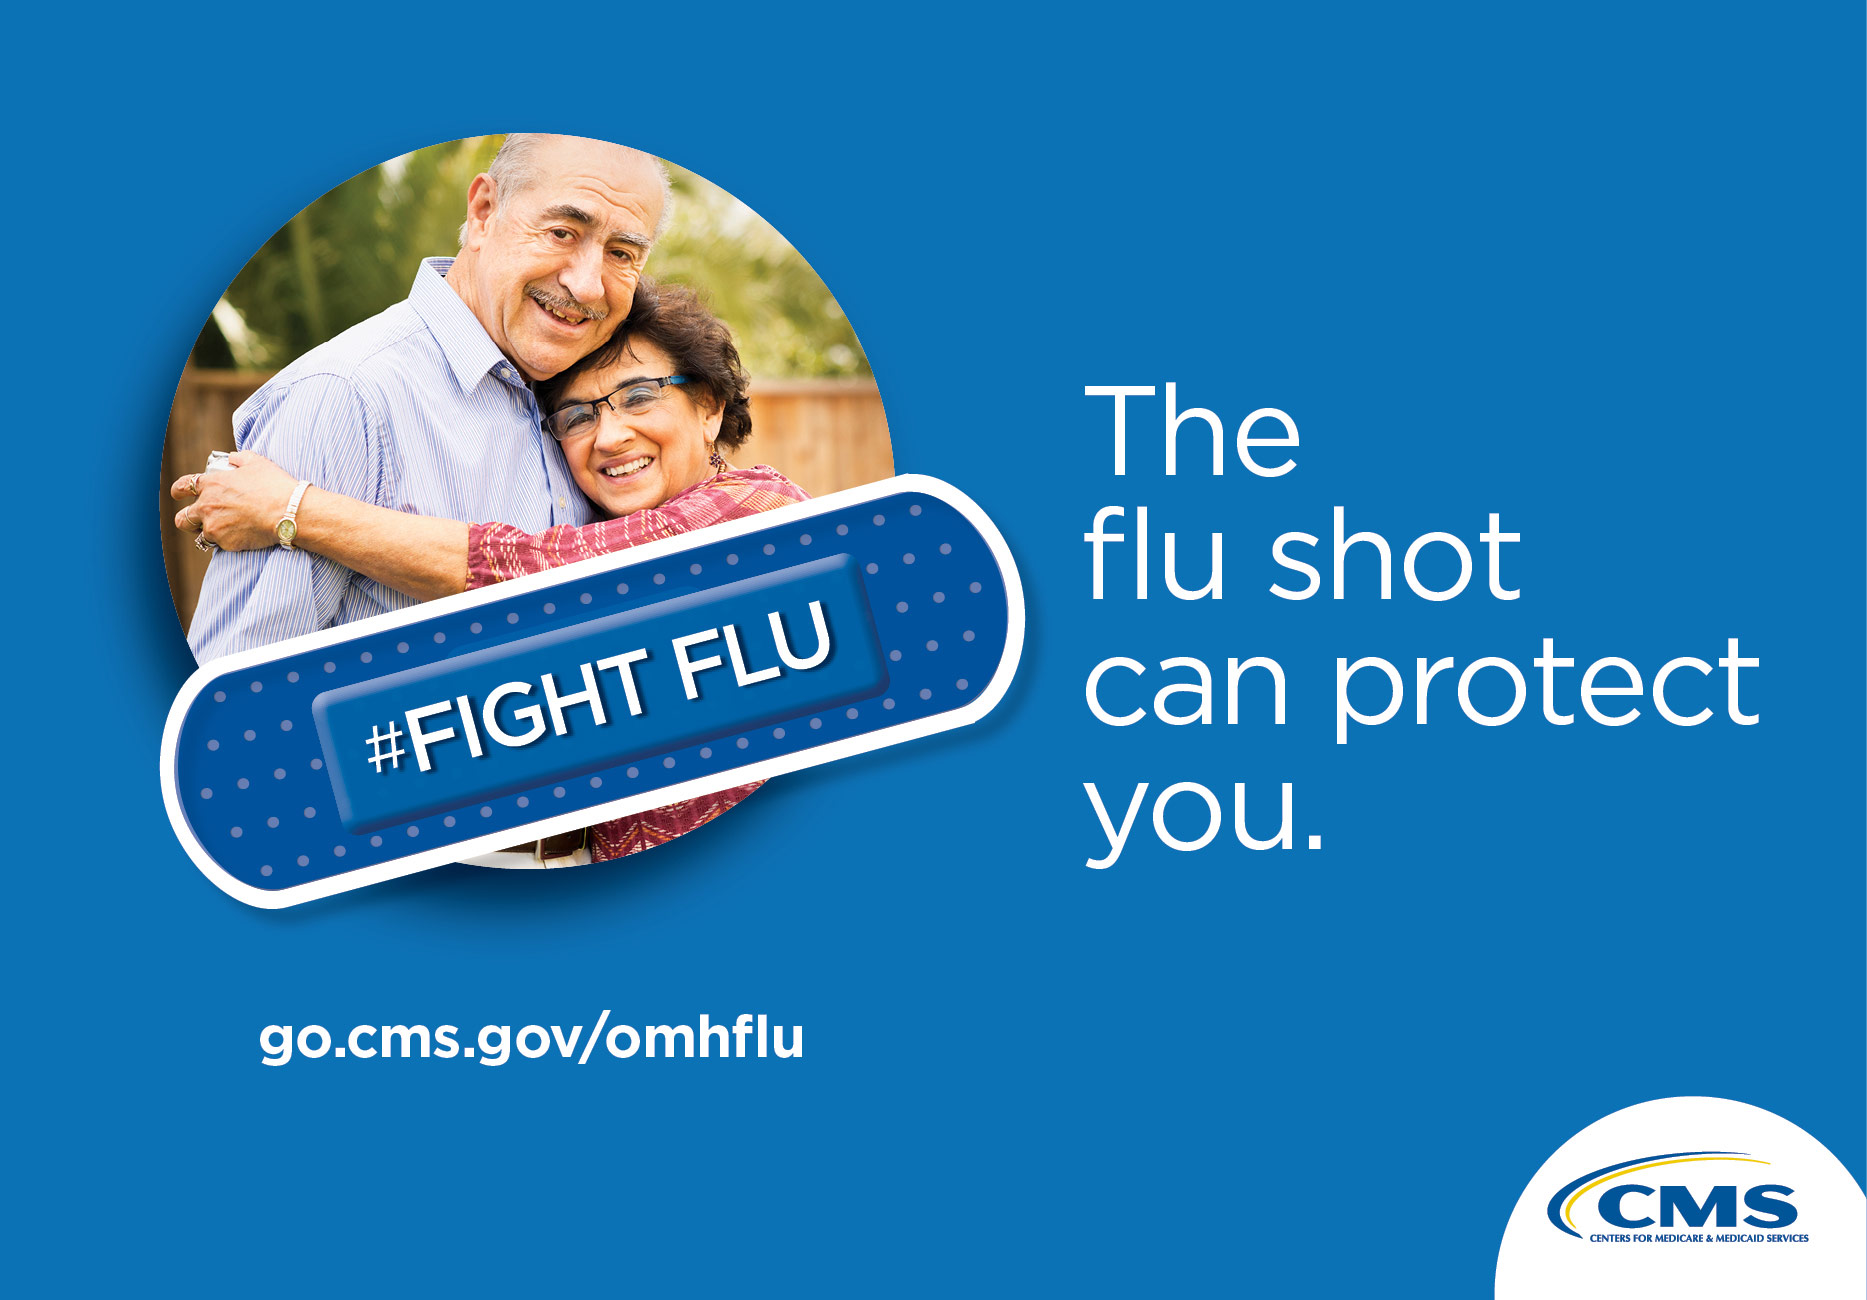 #Fight Flu.  The flu shot can protect you.  go.cms.gov/omhflu